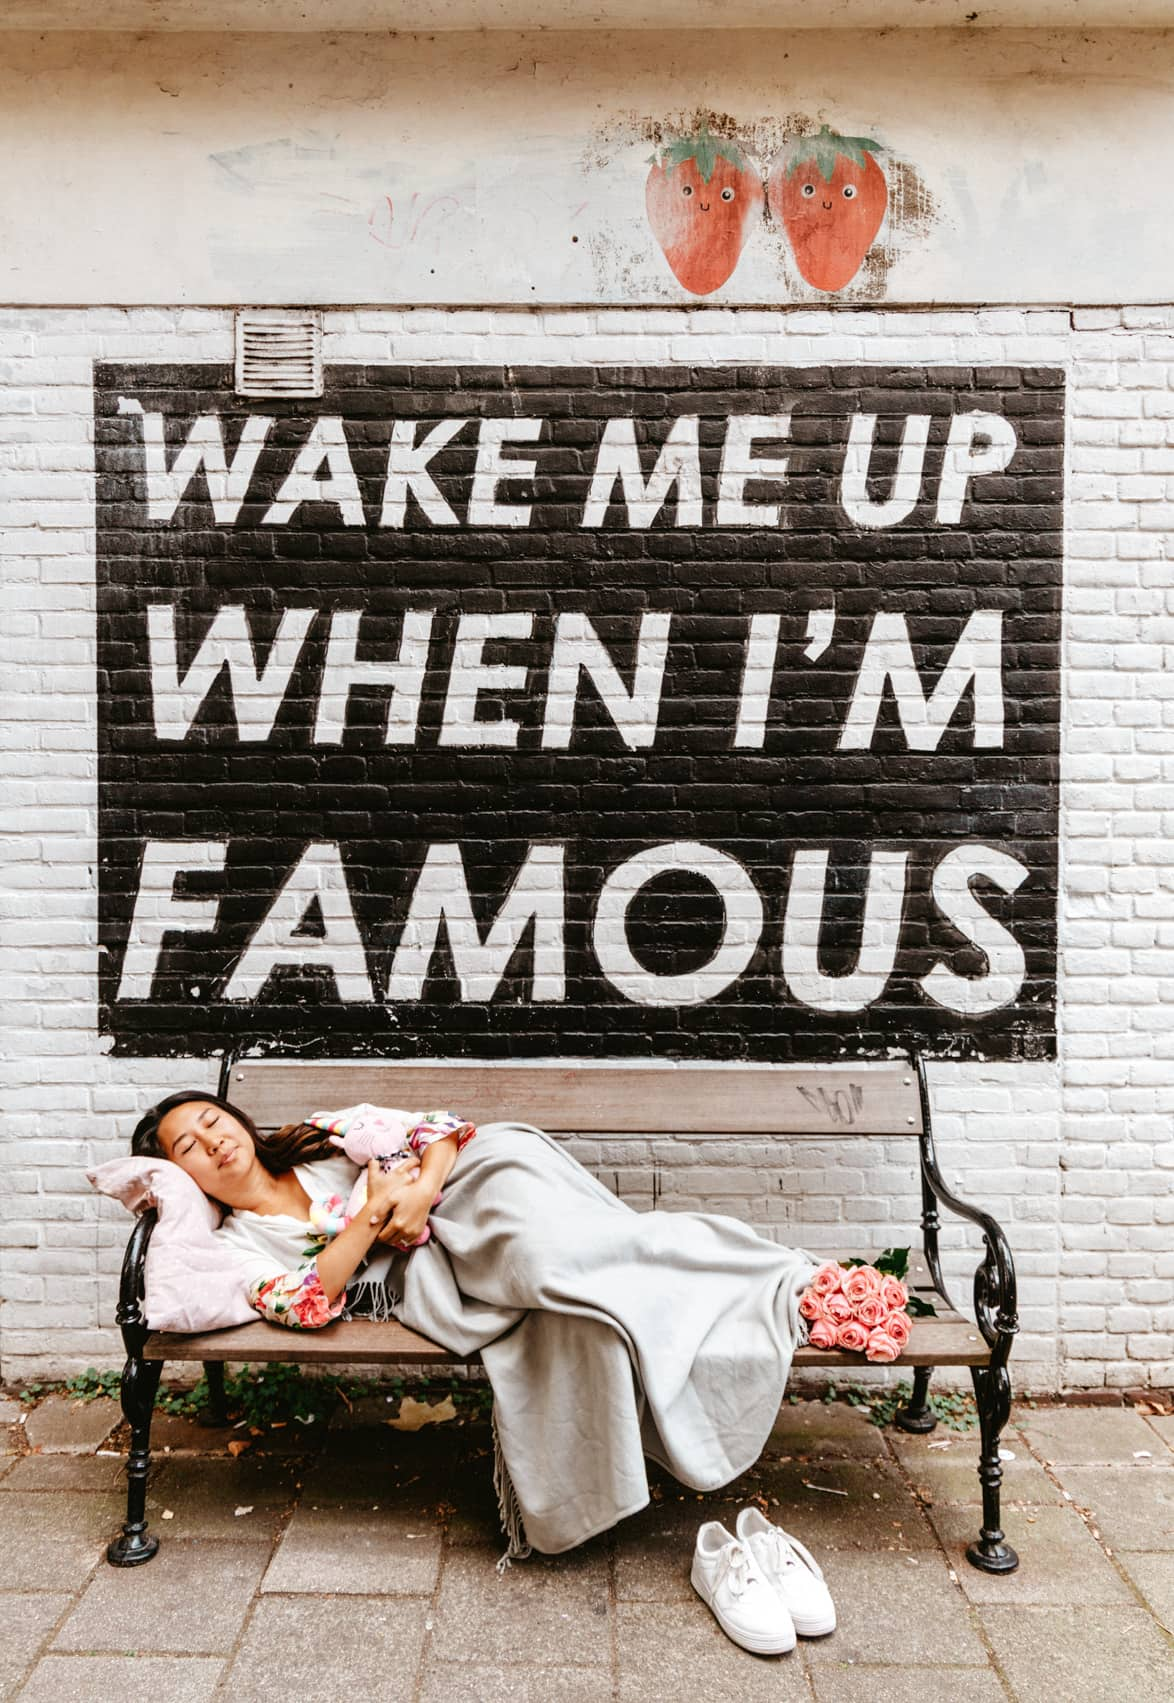 Wake me up when I'm famous Amsterdam Instagram spot